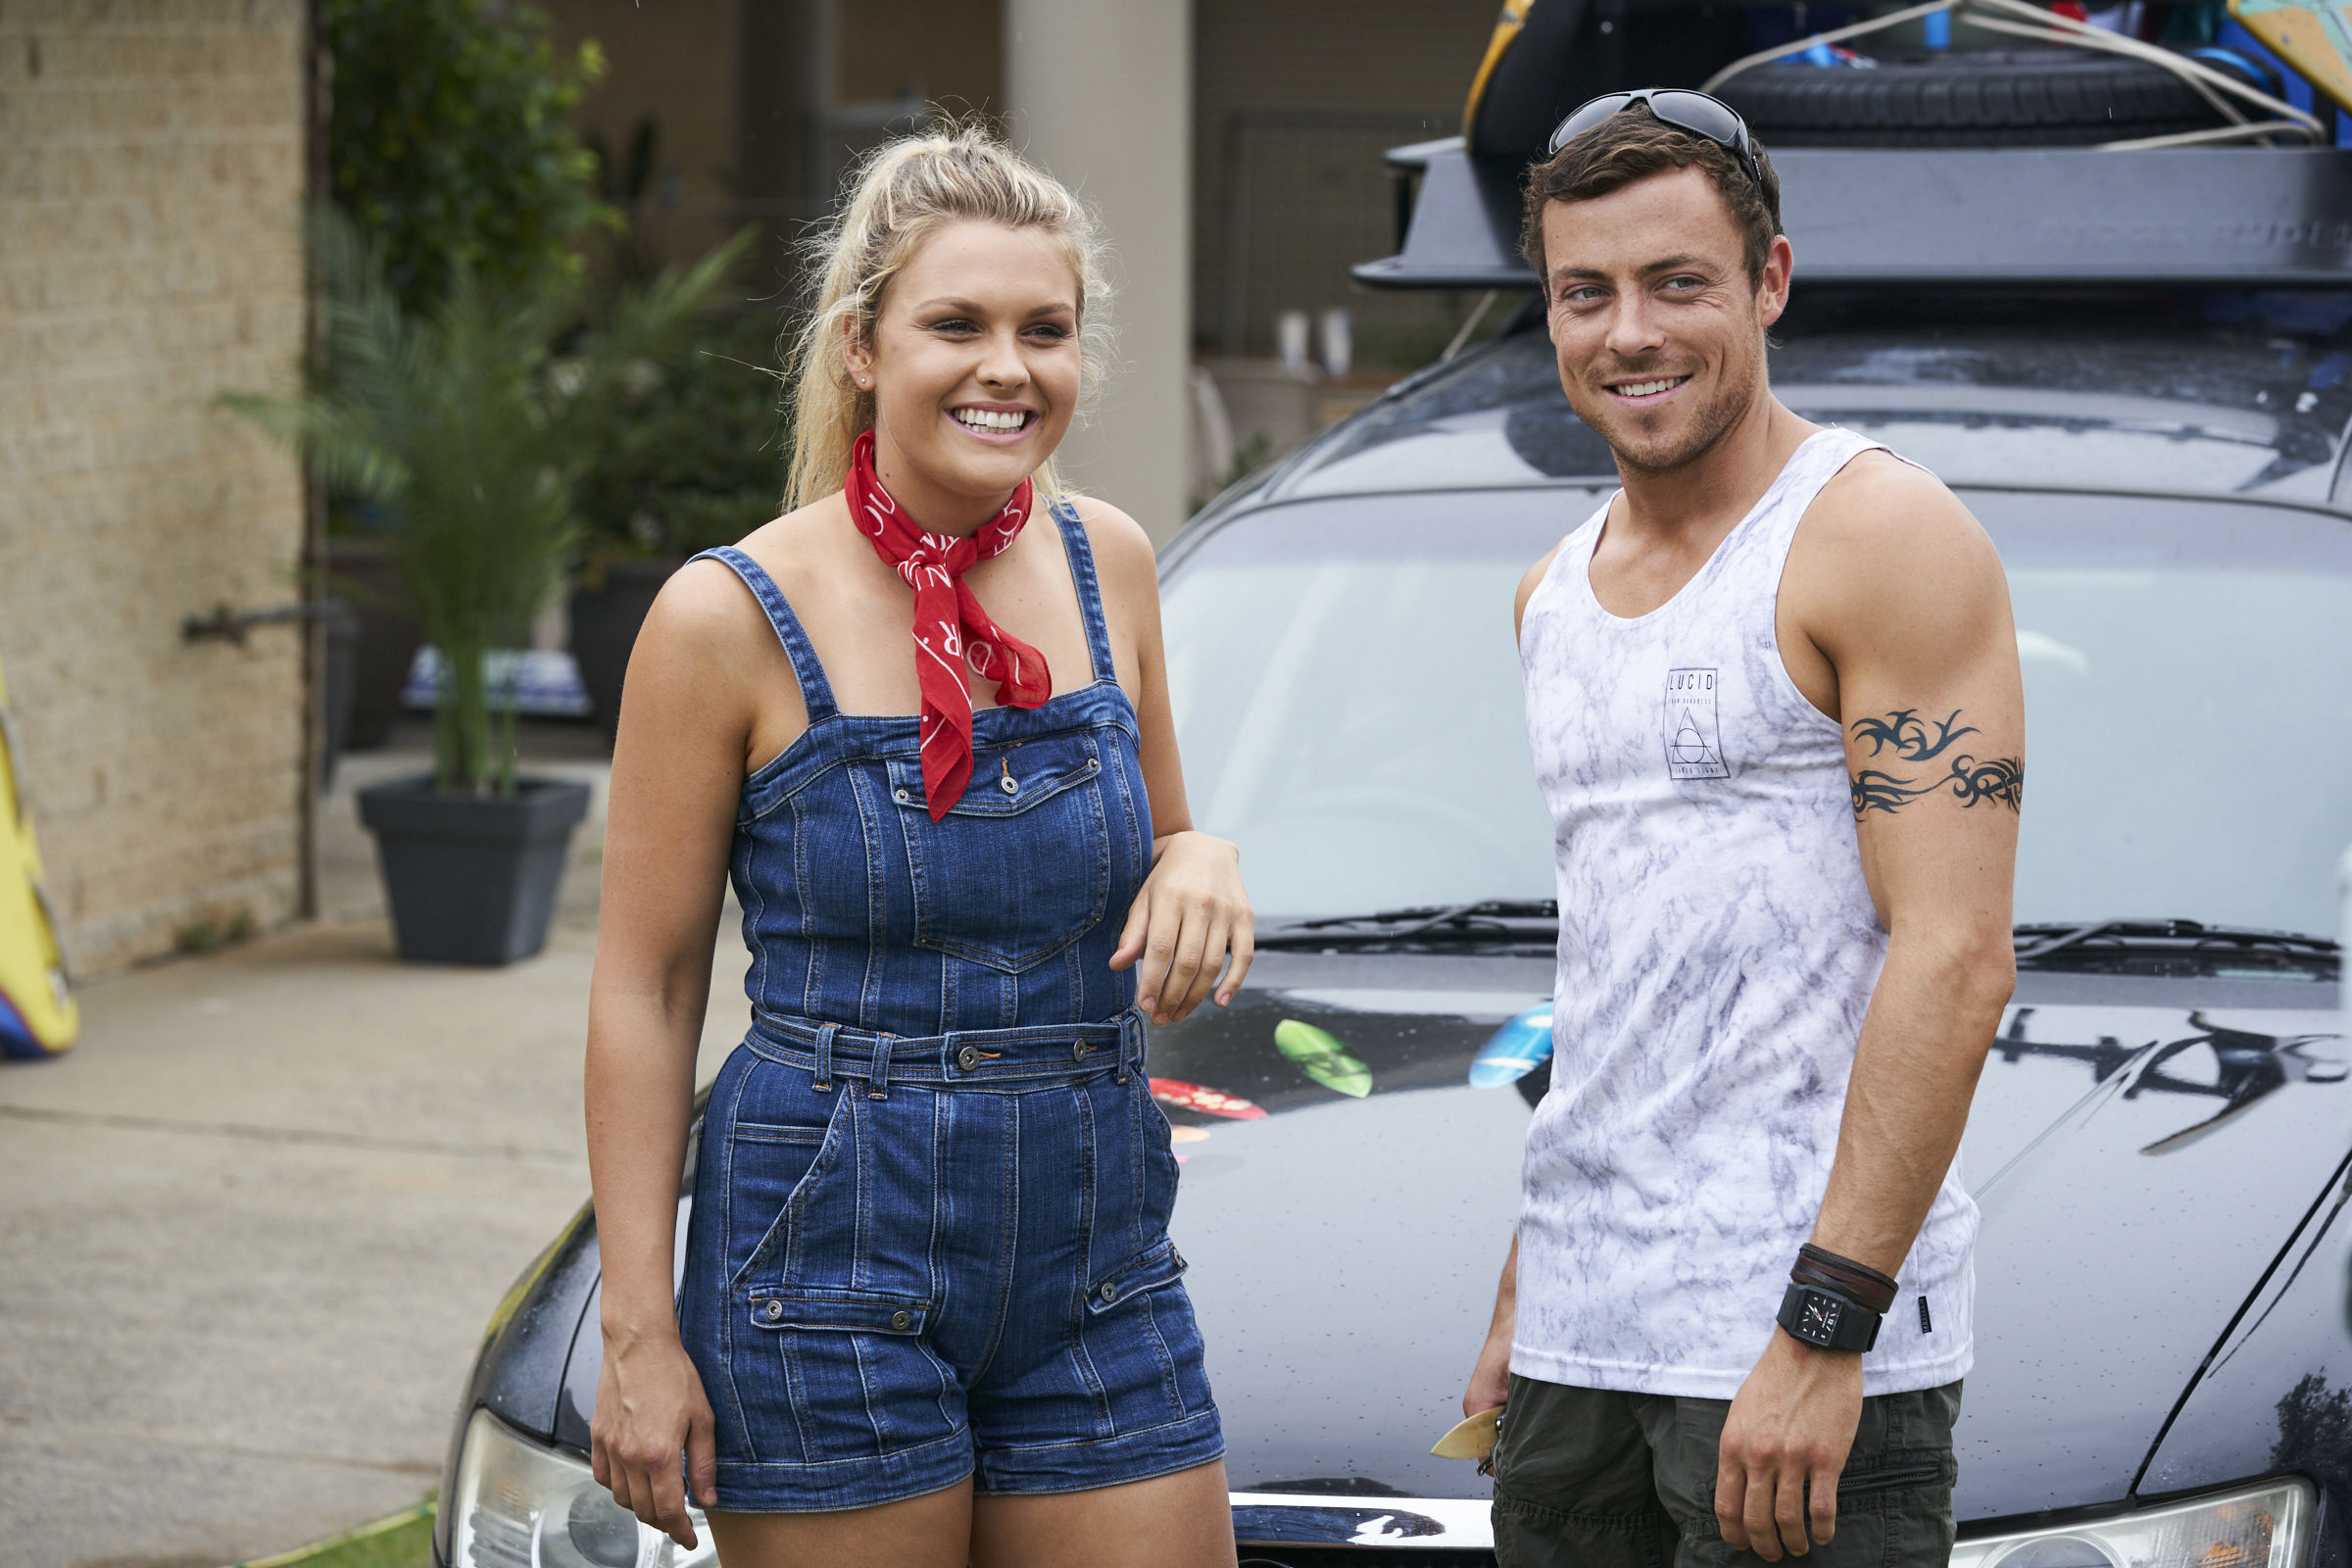 Home and Away's Sophie Dillman and Patrick O'Connor confirm real-life romance